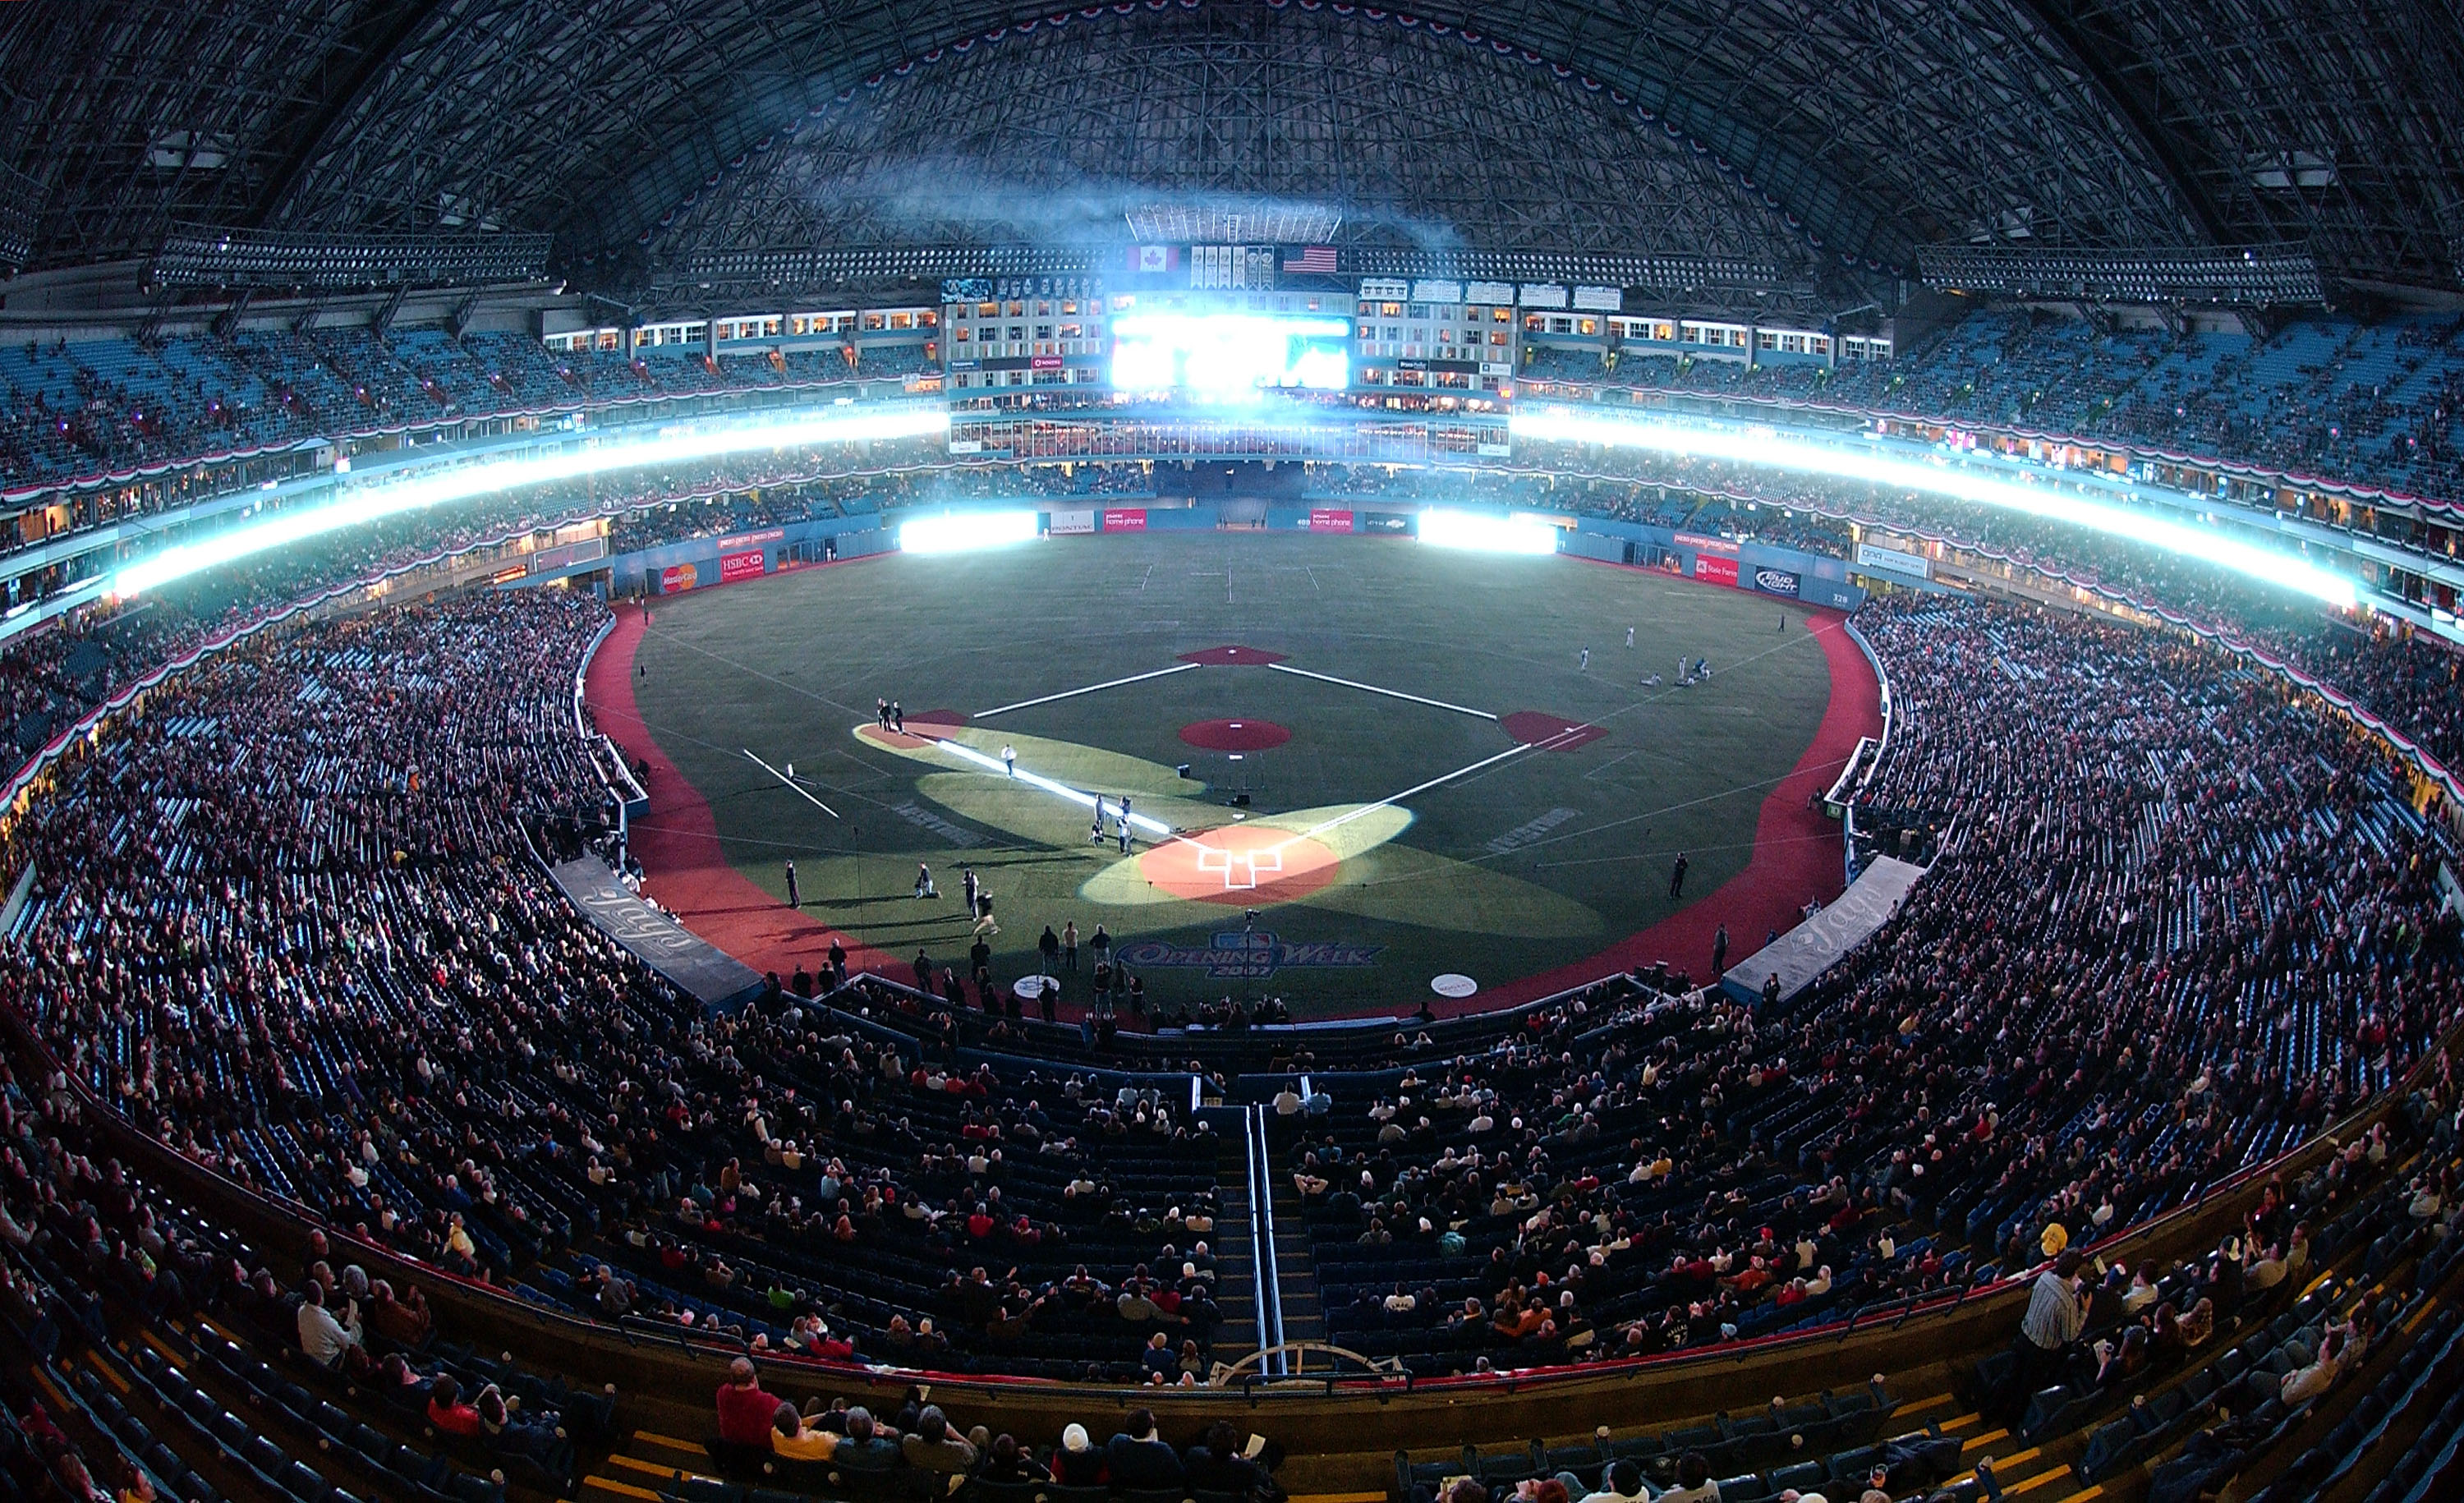 Where to Eat at Rogers Centre, Home of the Toronto Blue Jays